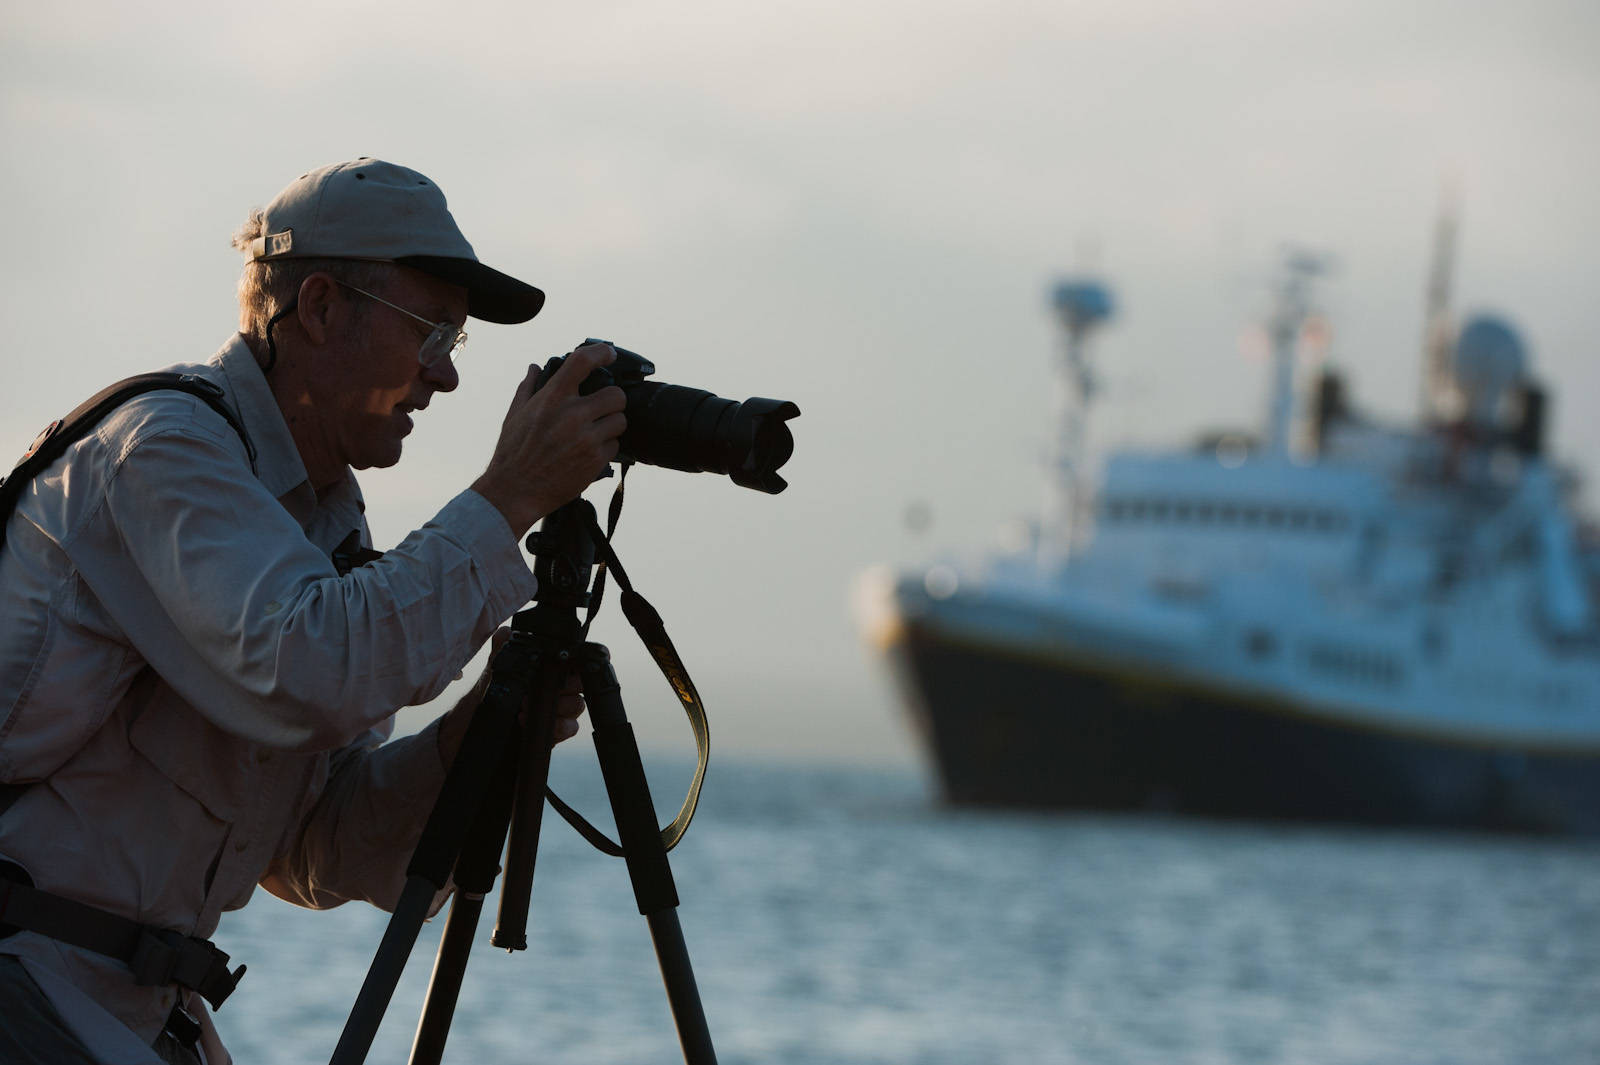 Photo: A man takes pictures in the Galapagos Islands.